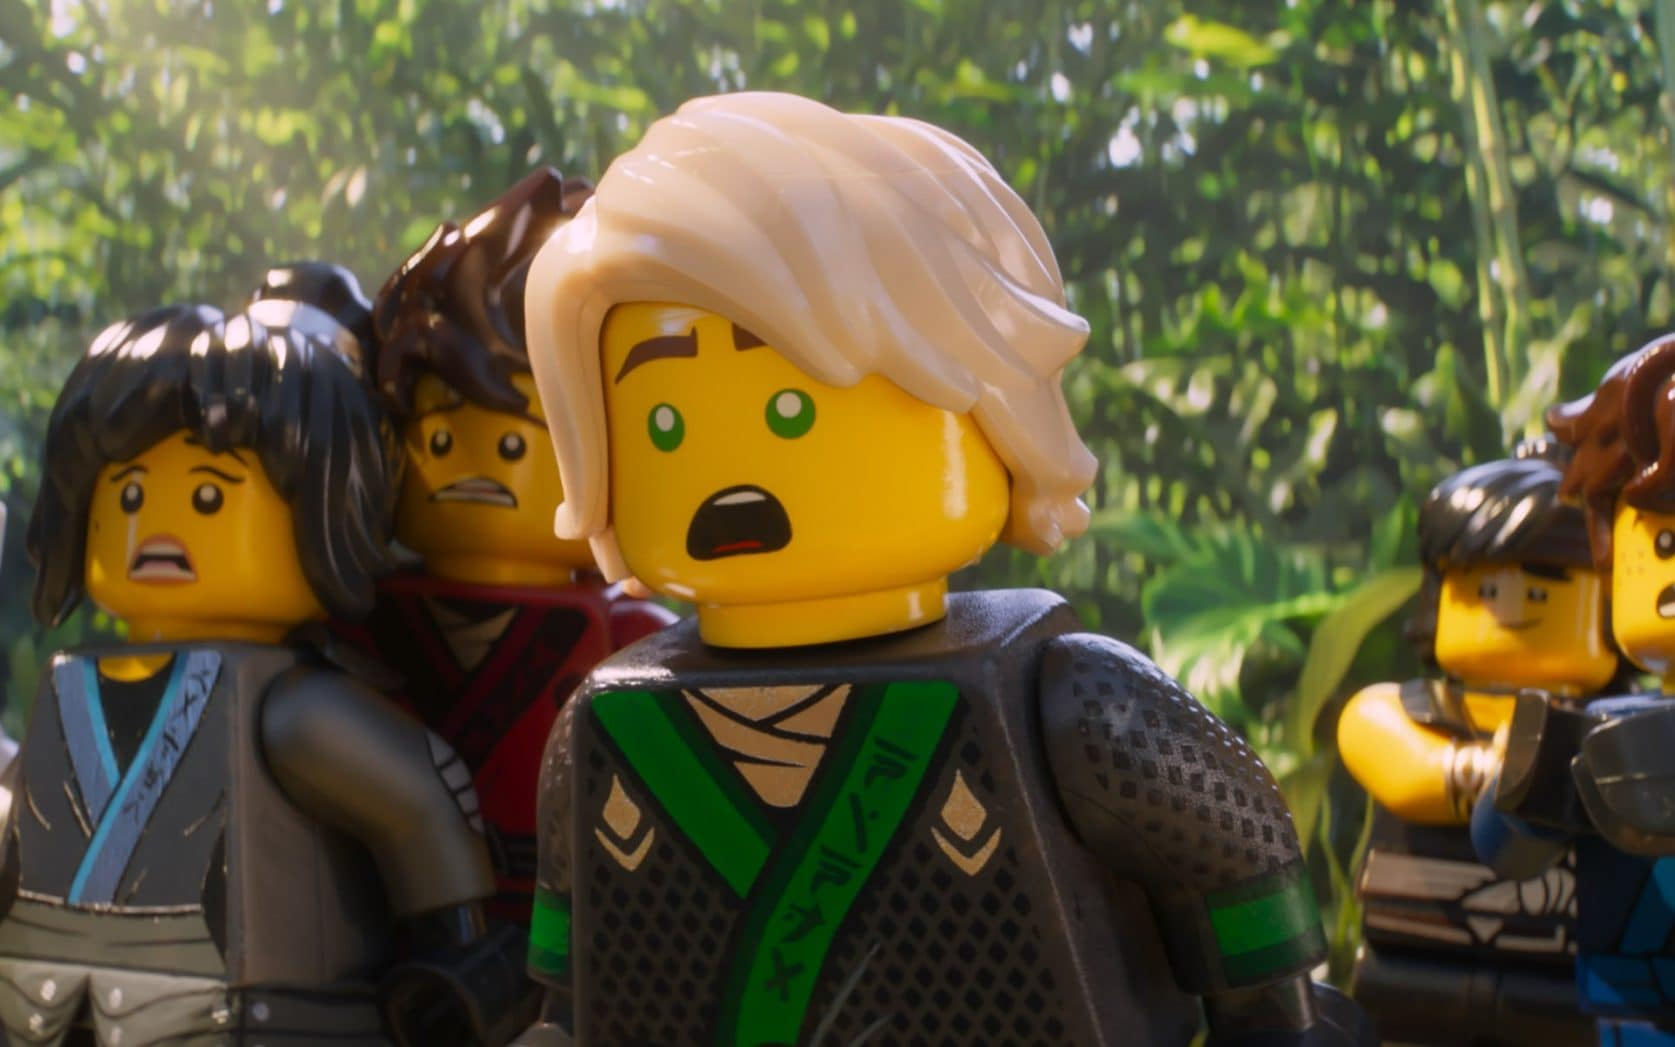 The Lego Ninjago Movie review  bamboozlingly inept Creative block  the third Lego film lets the franchise down